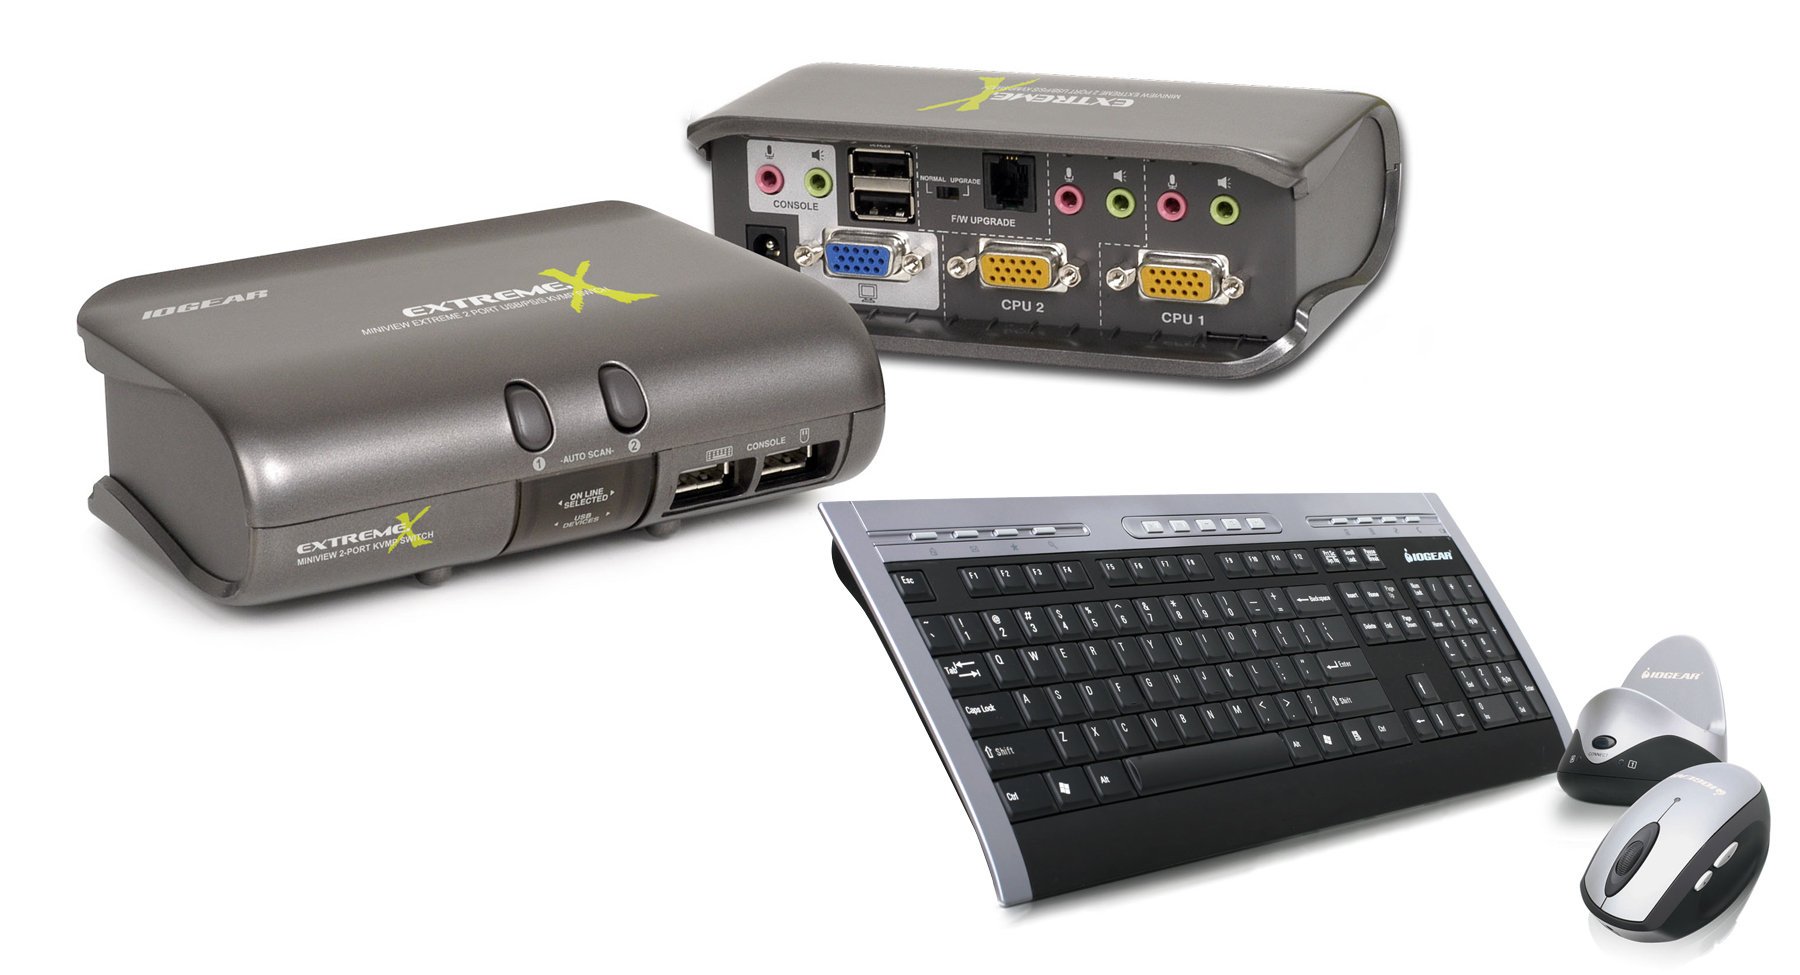 iogear gcs1732 km two port usb kvm with wireless mouse and keyboard. Black Bedroom Furniture Sets. Home Design Ideas